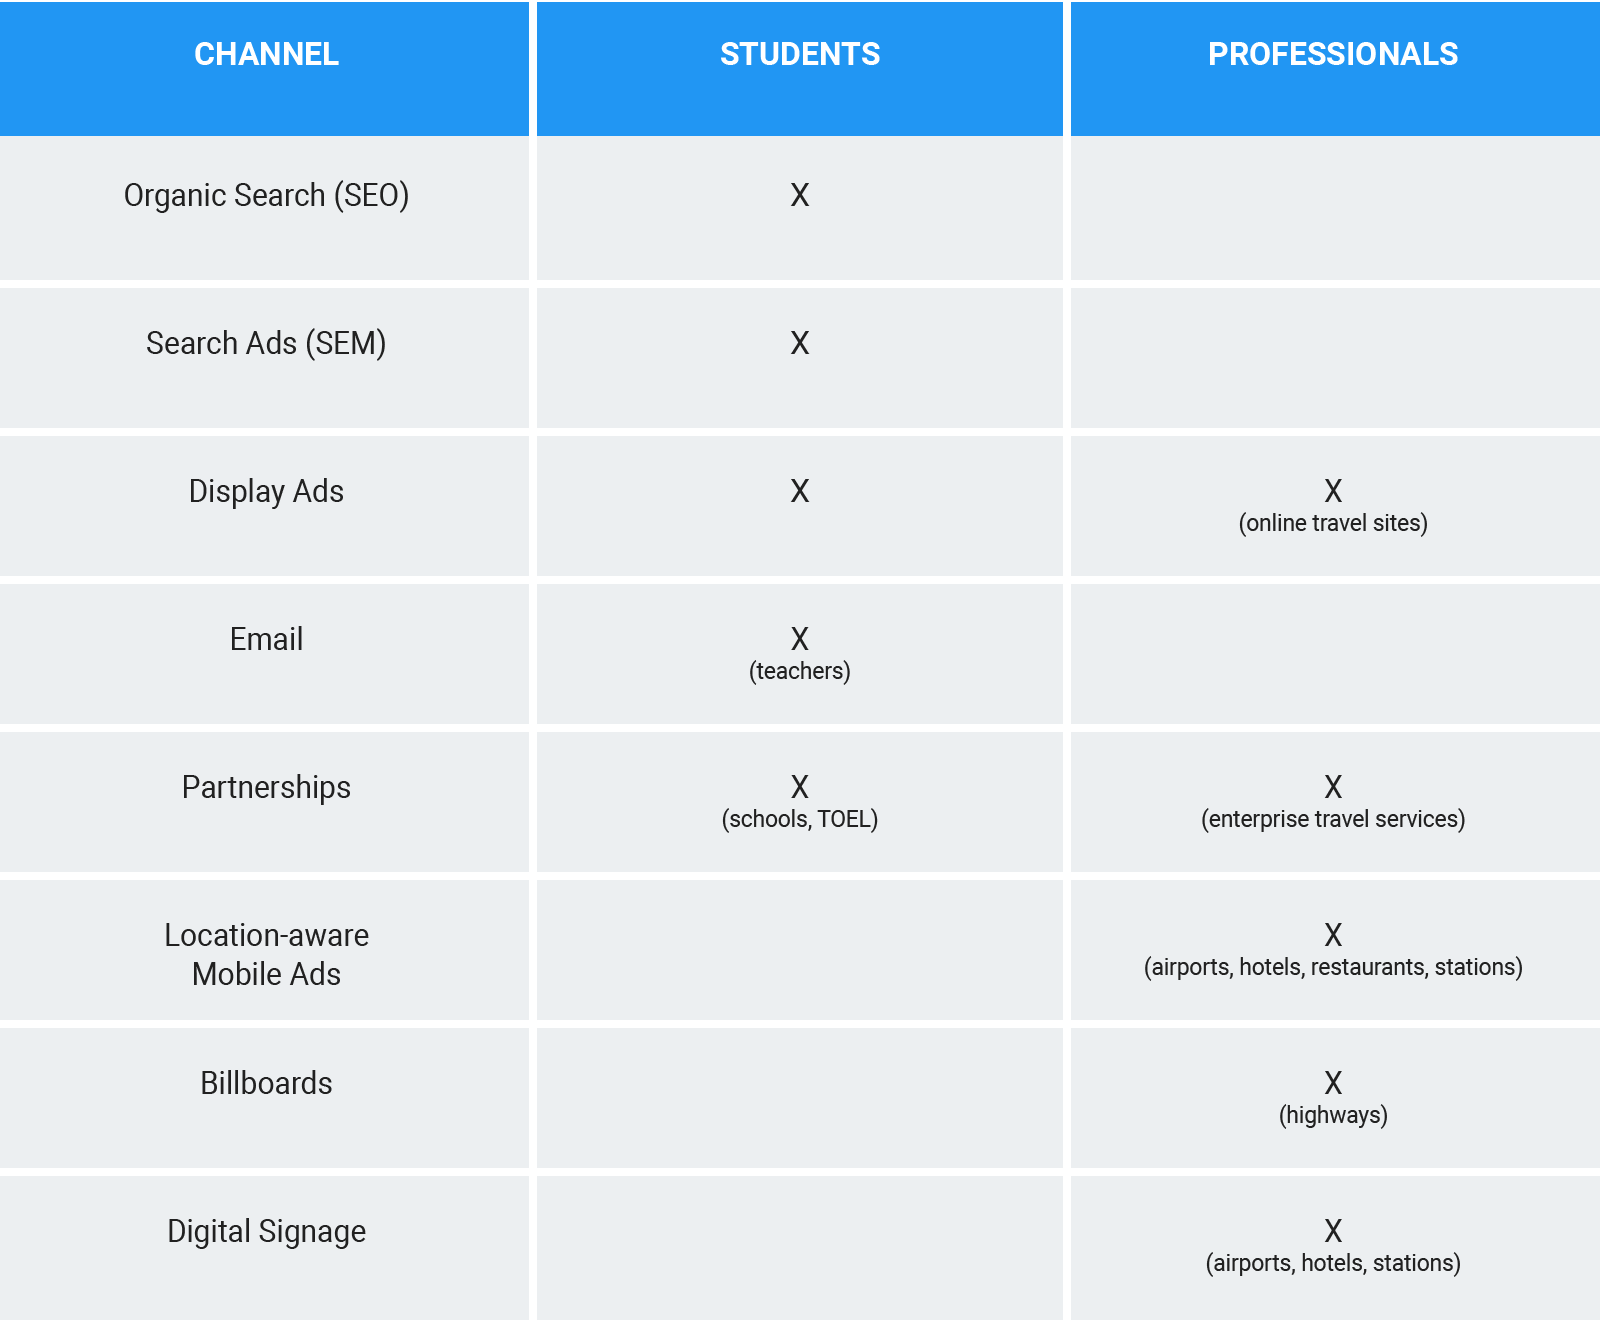 Summary of marketing channels for students and professionals